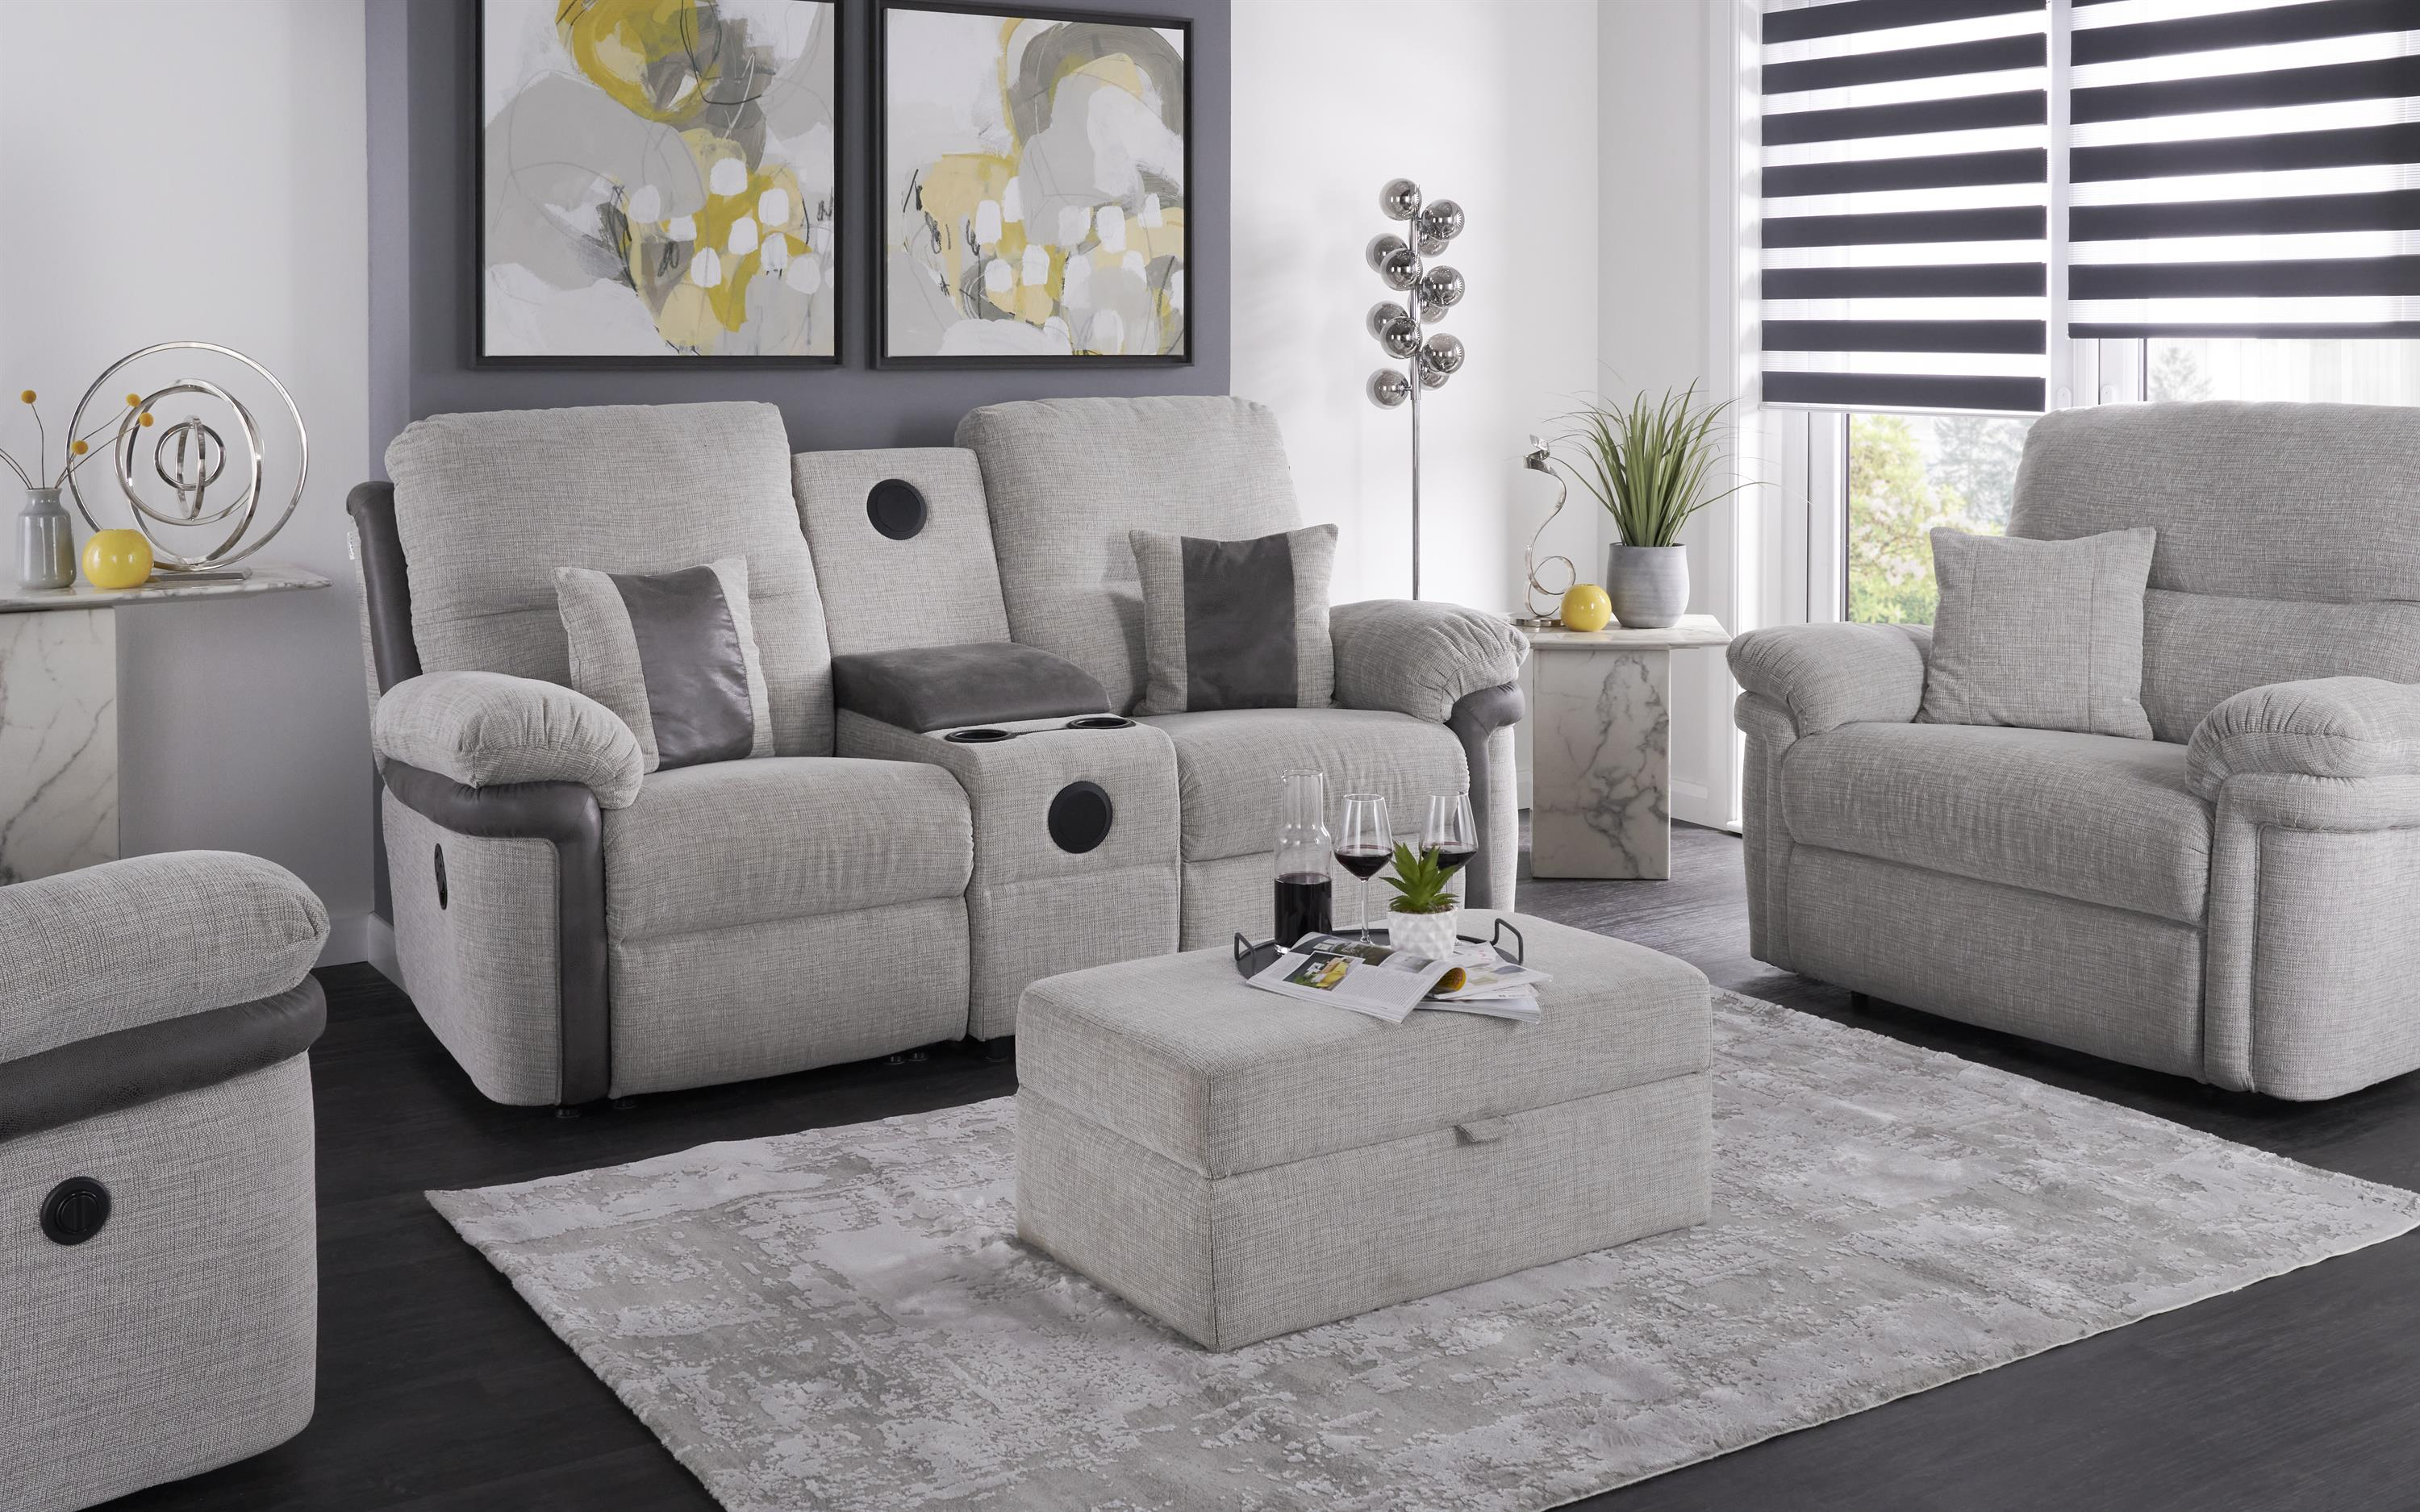 La-Z-Boy Nevada 3 Seater Manual Recliner Sofa With Sound, , large